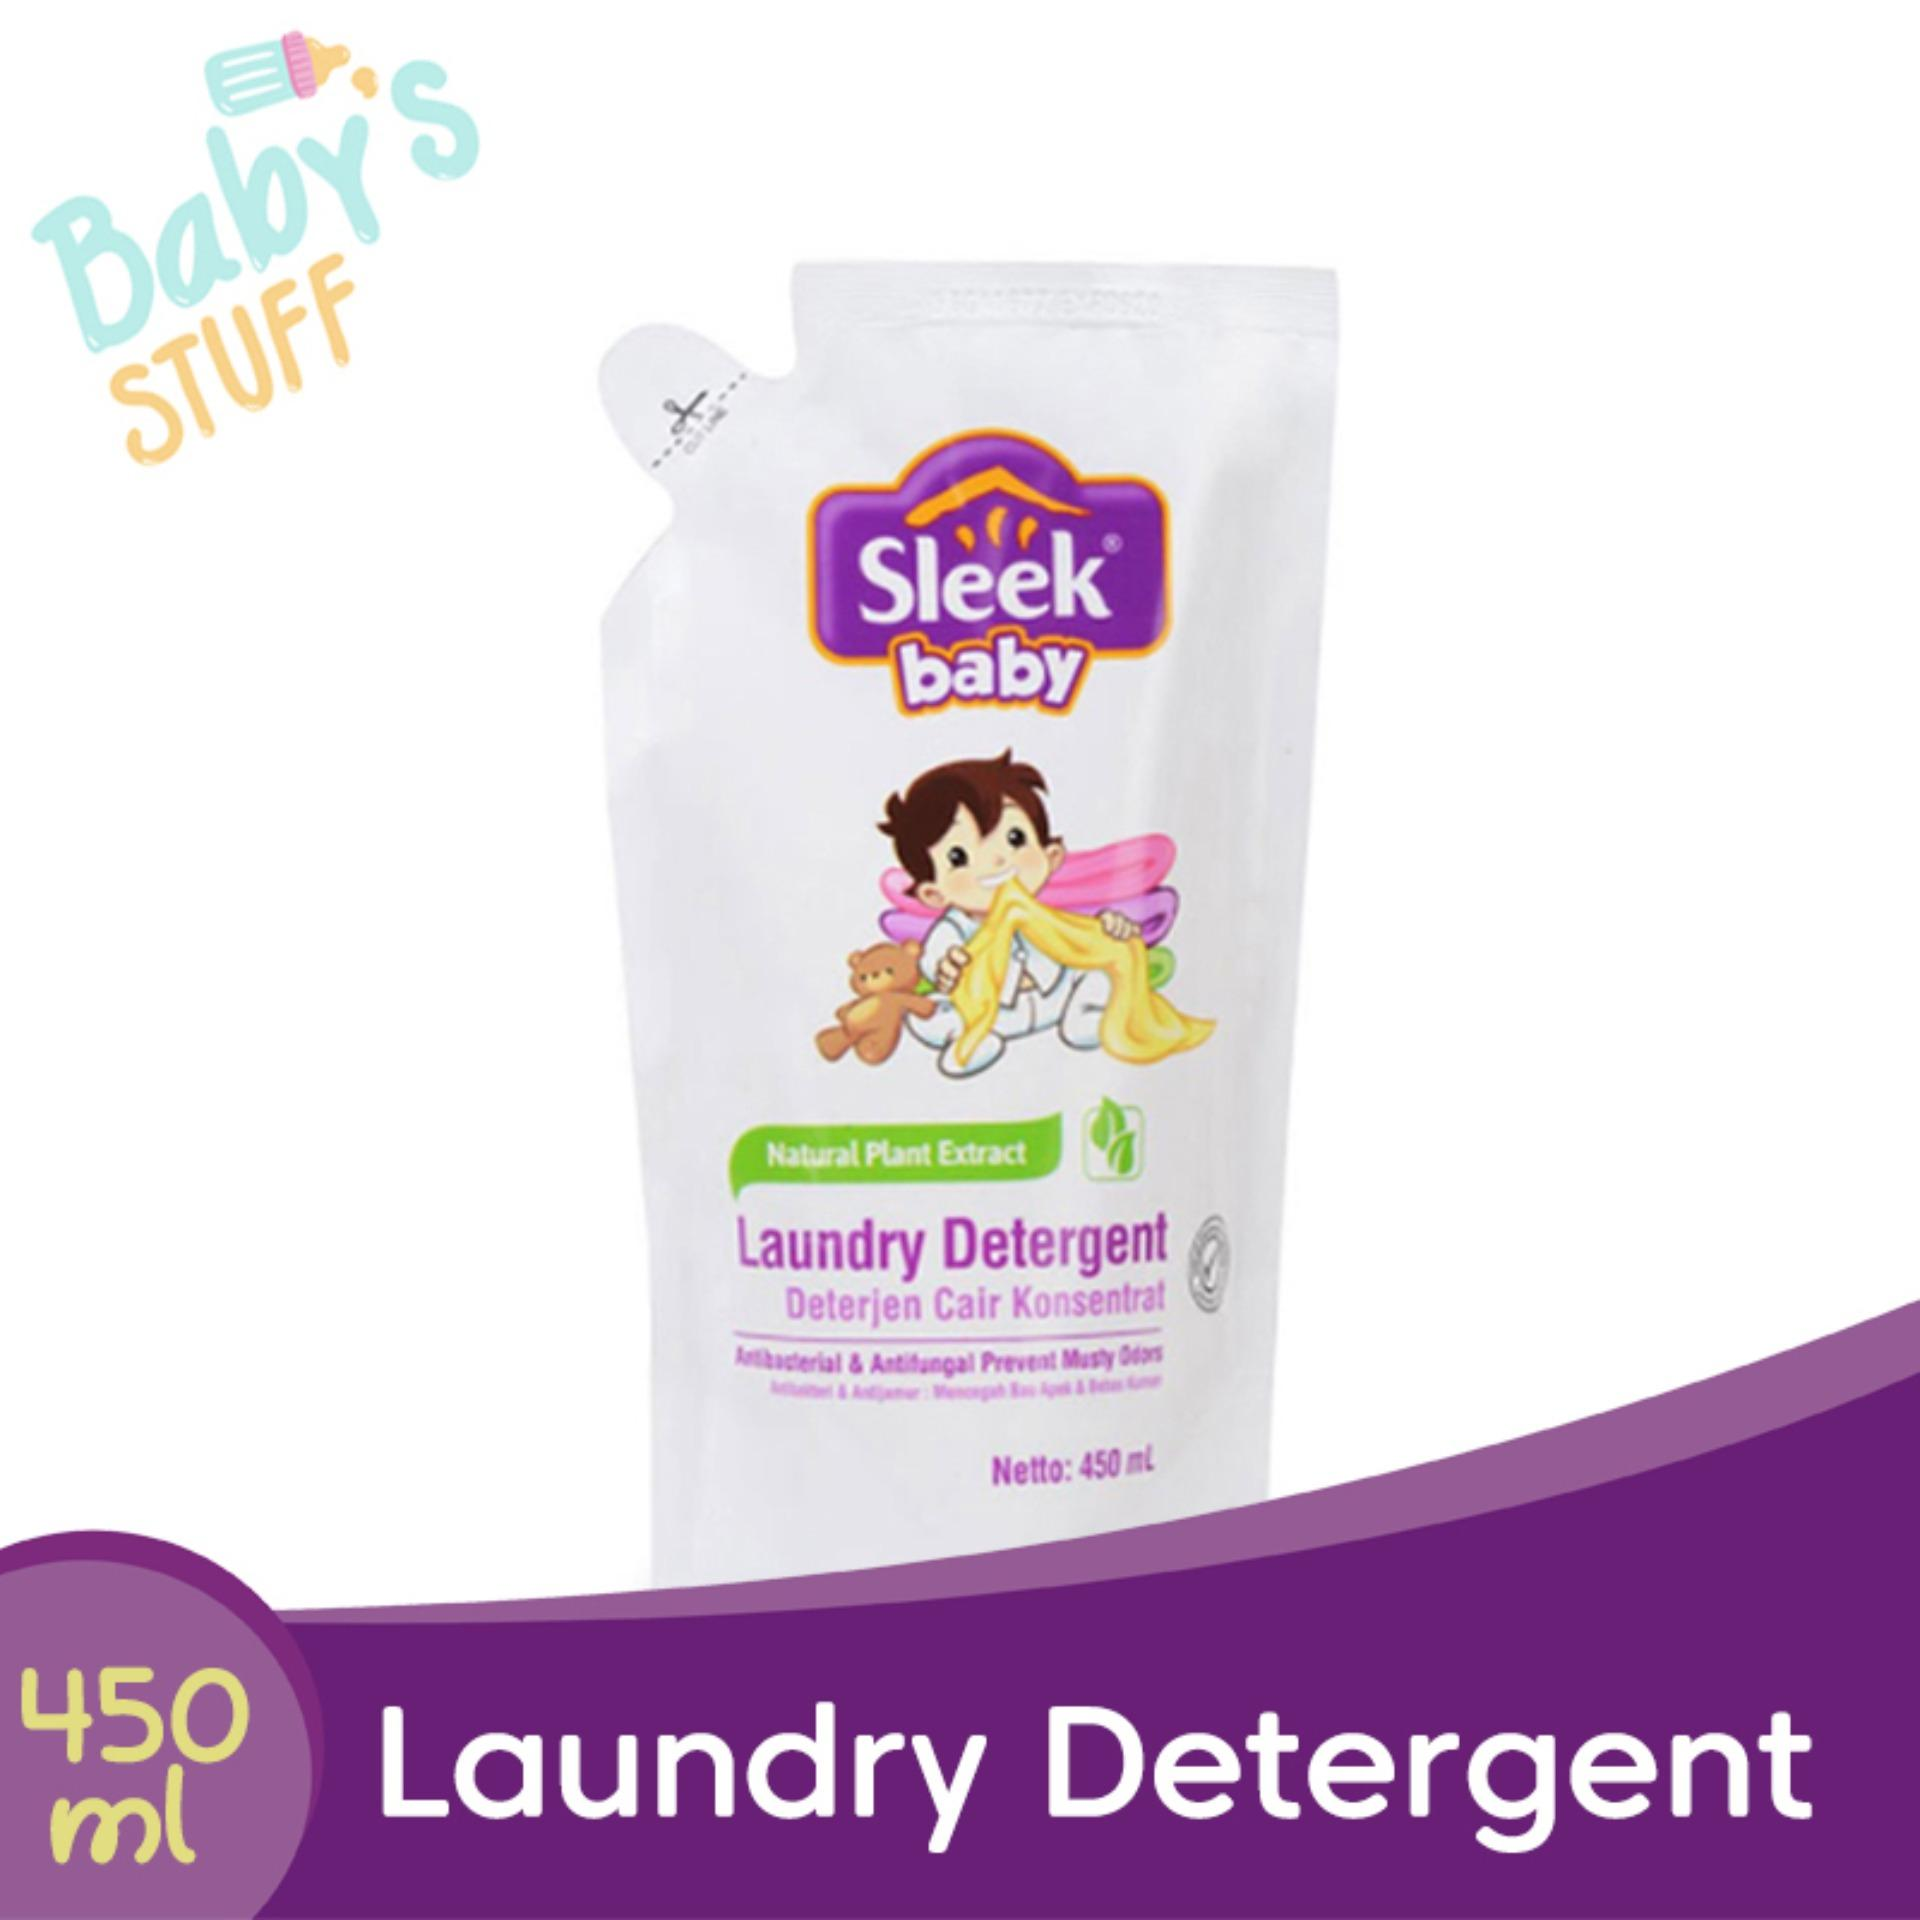 Sleek Baby Laundry Detergent Refill 450 Ml By Babys Stuff.